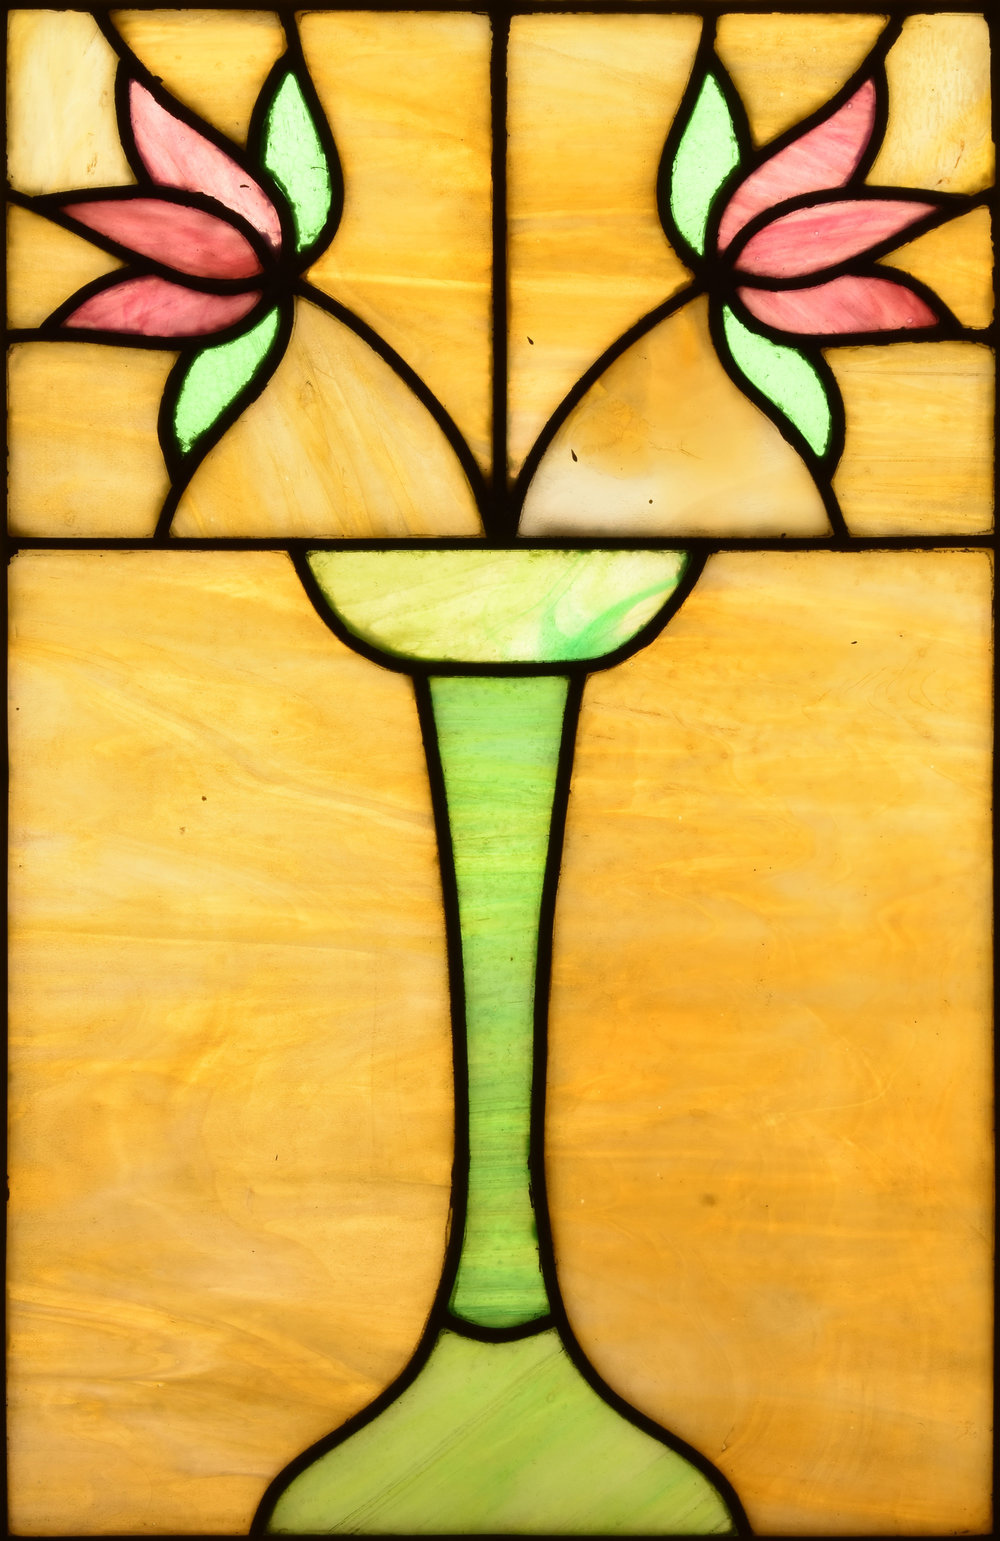 48056-slag-window-with-vase-of-flowers-glow-glass.jpg